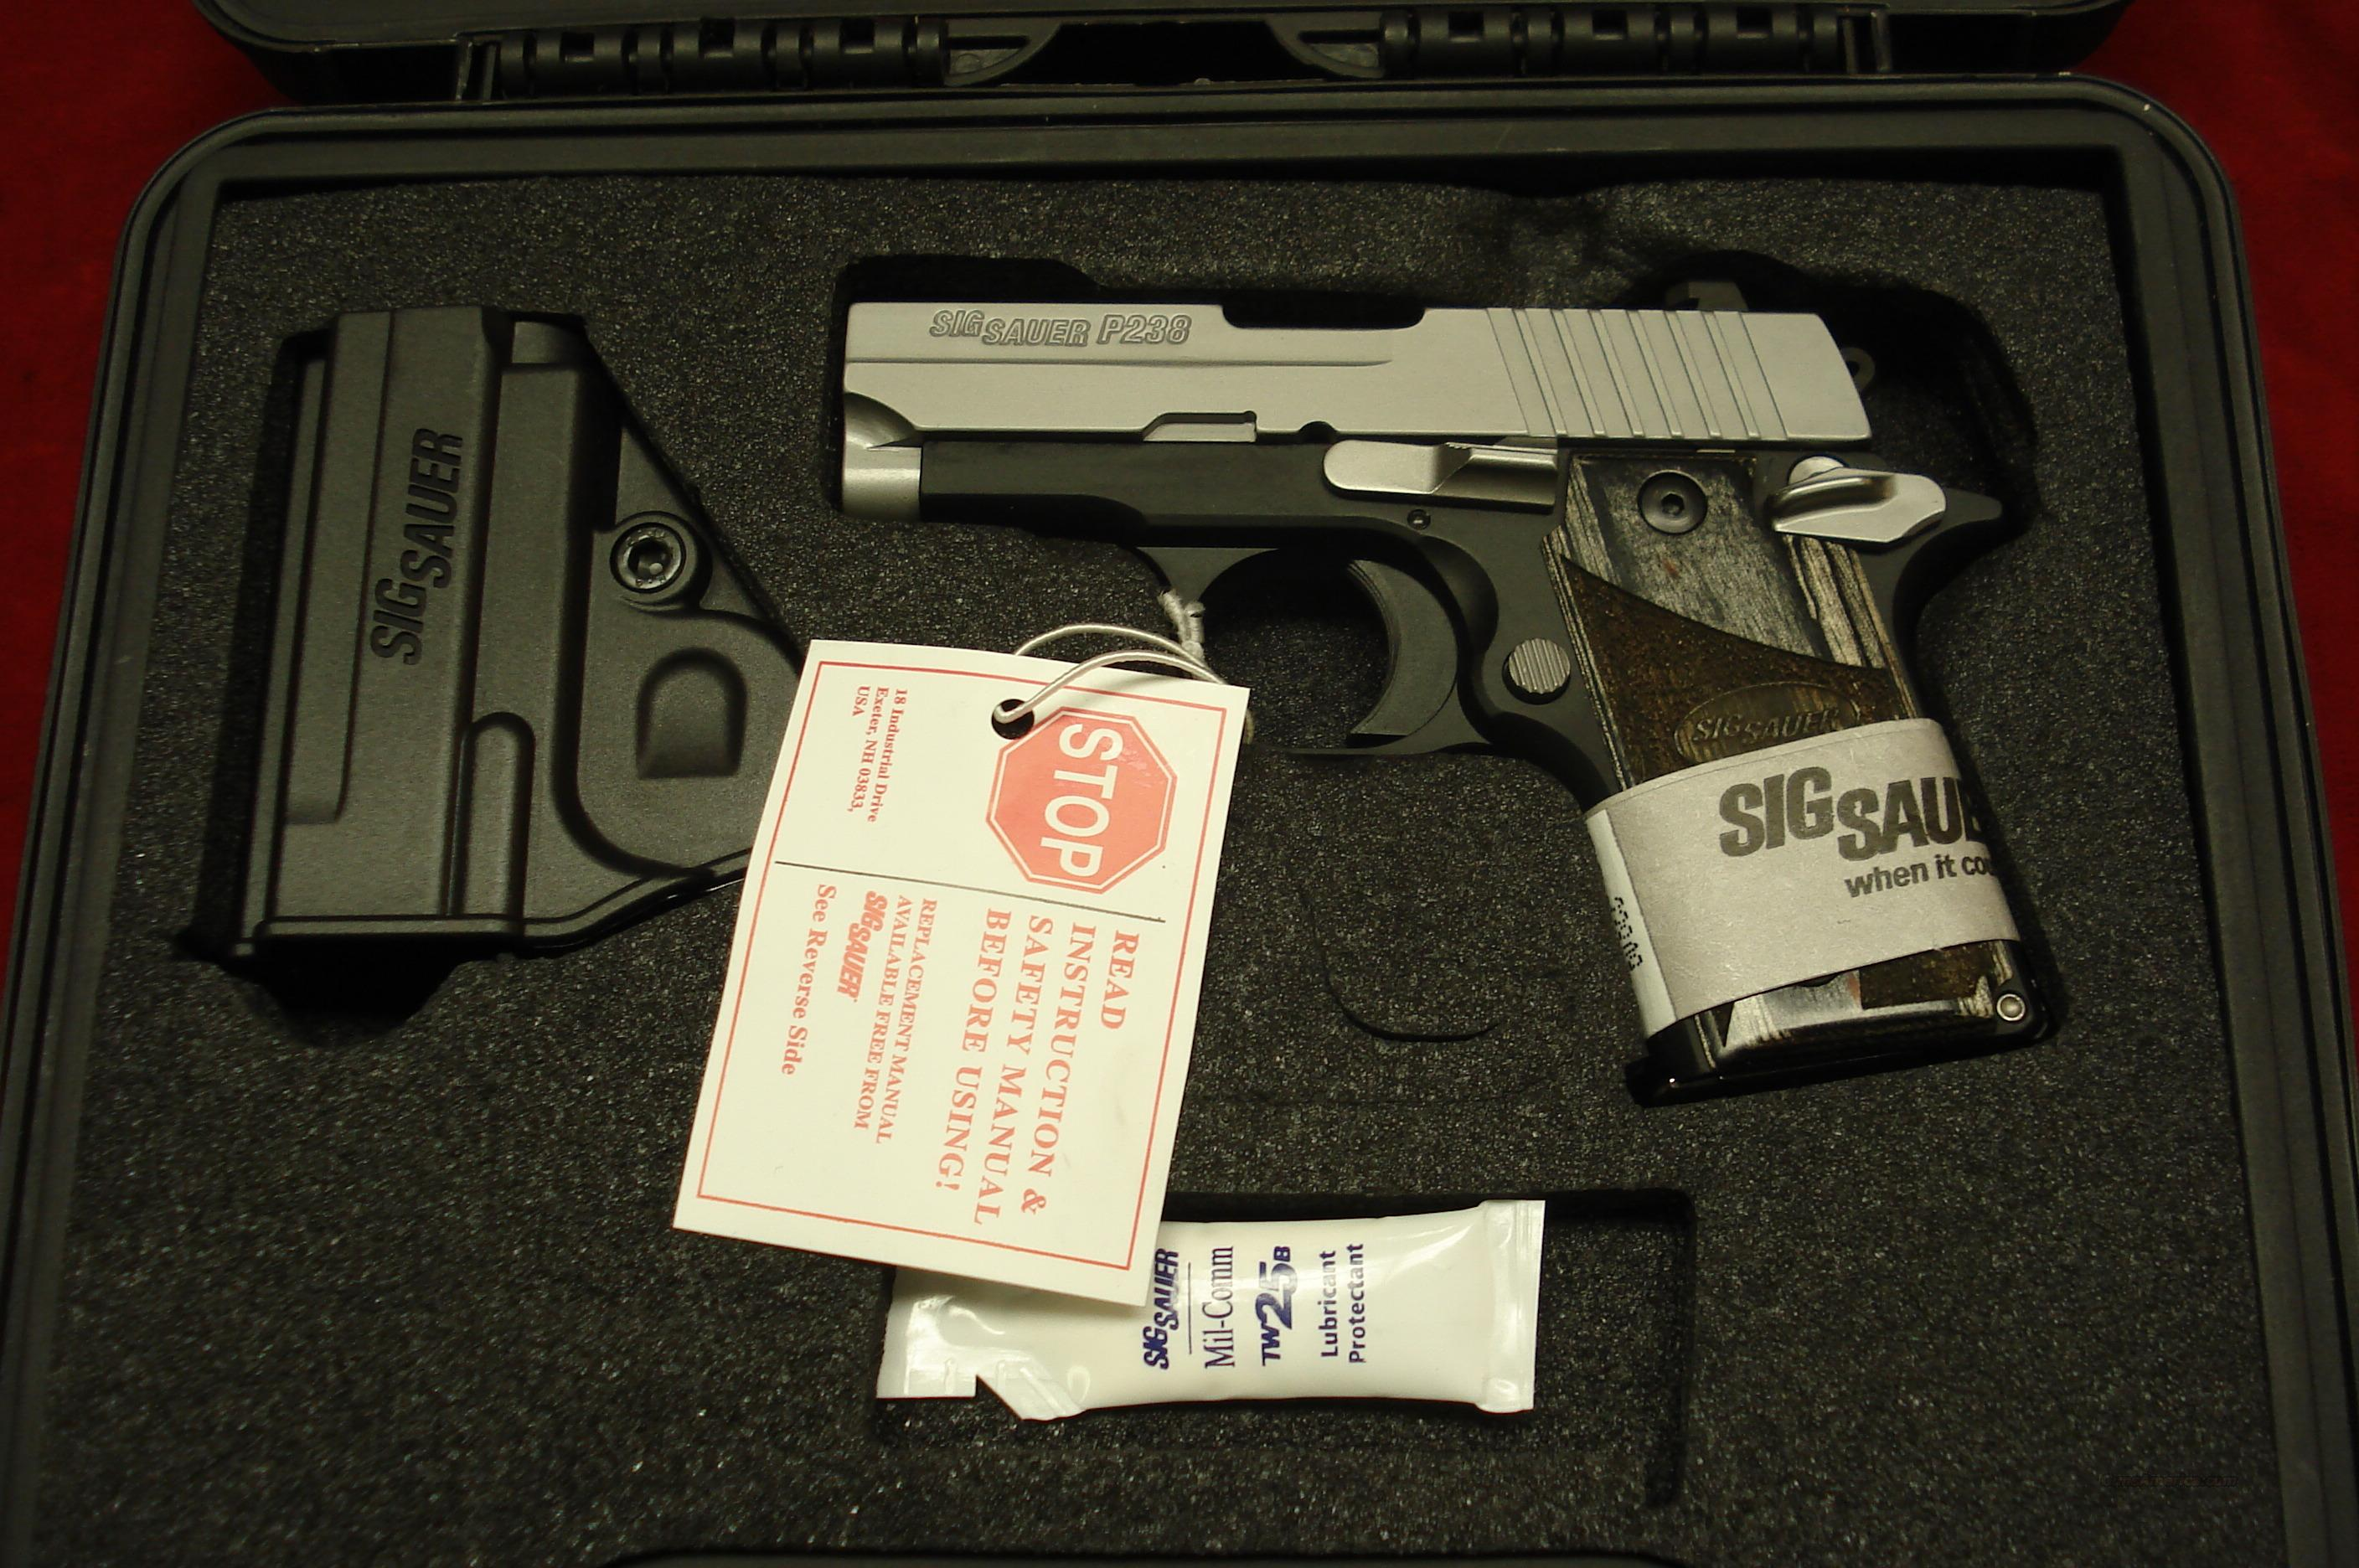 SIG P238 STAINLESS DUO-TONE 380CAL. NIGHT SIGHTS AND NEW AMBI. SAFETY NEW   Guns > Pistols > Sig - Sauer/Sigarms Pistols > Other